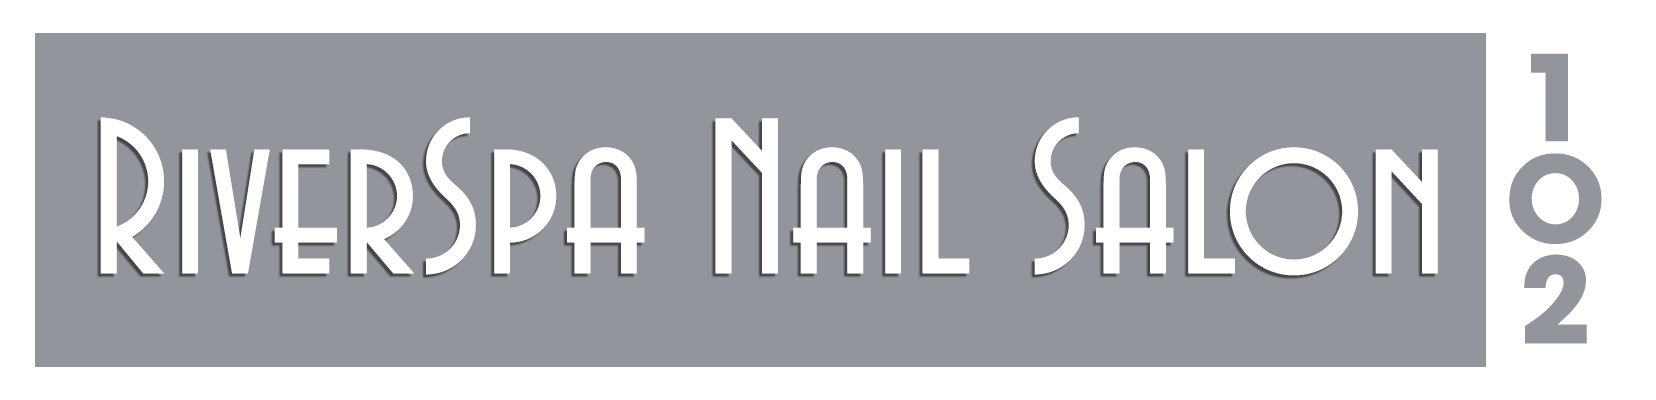 River Spa Nail Salon - Which is better acrylic or gel nails?- nail salon 78704